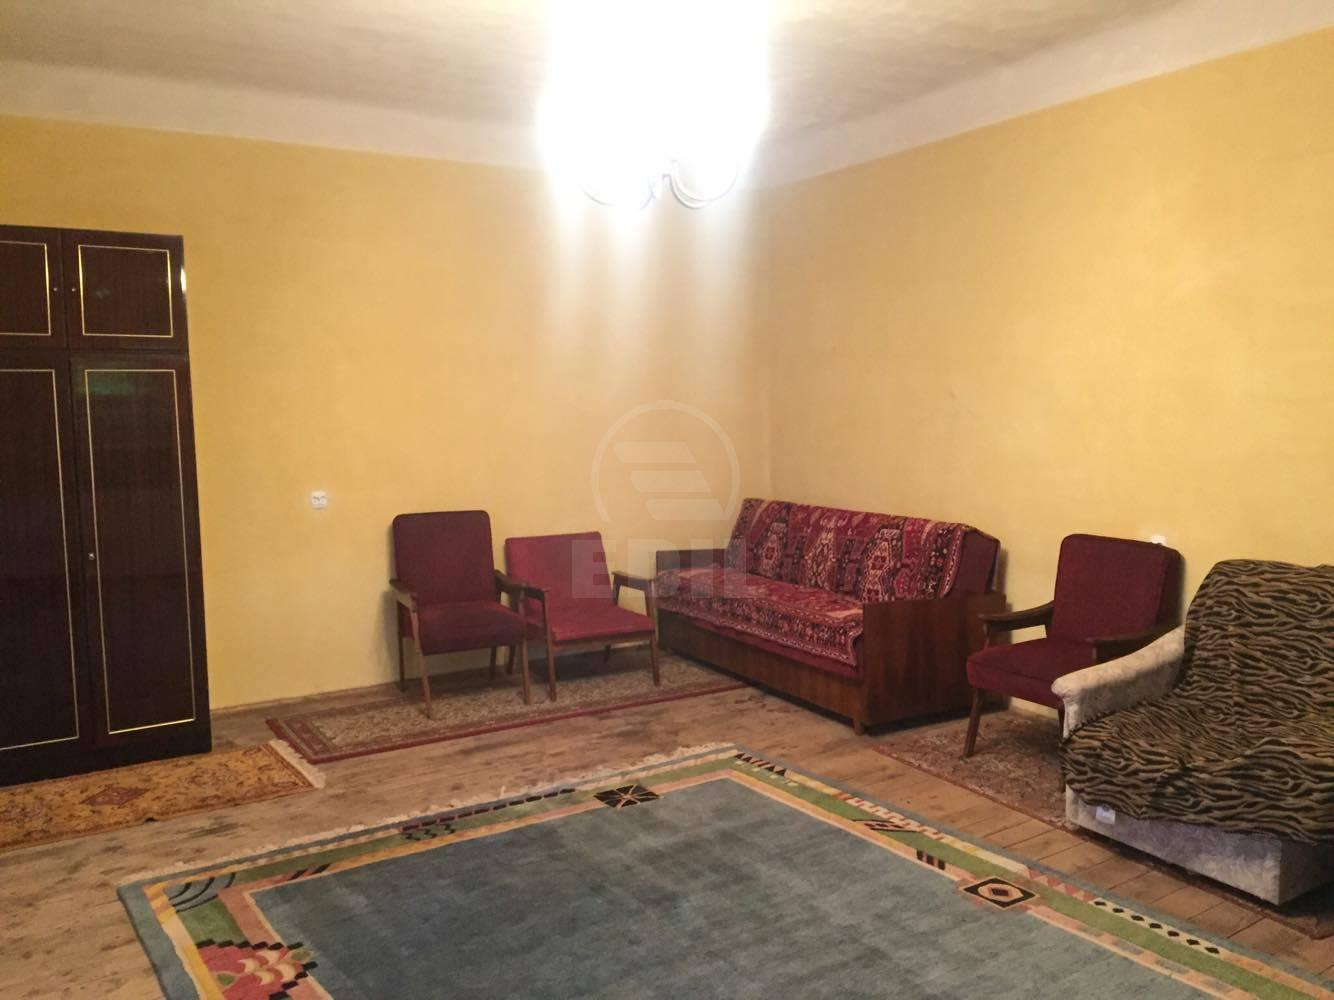 Office for rent 3 rooms, BICJ281593-14